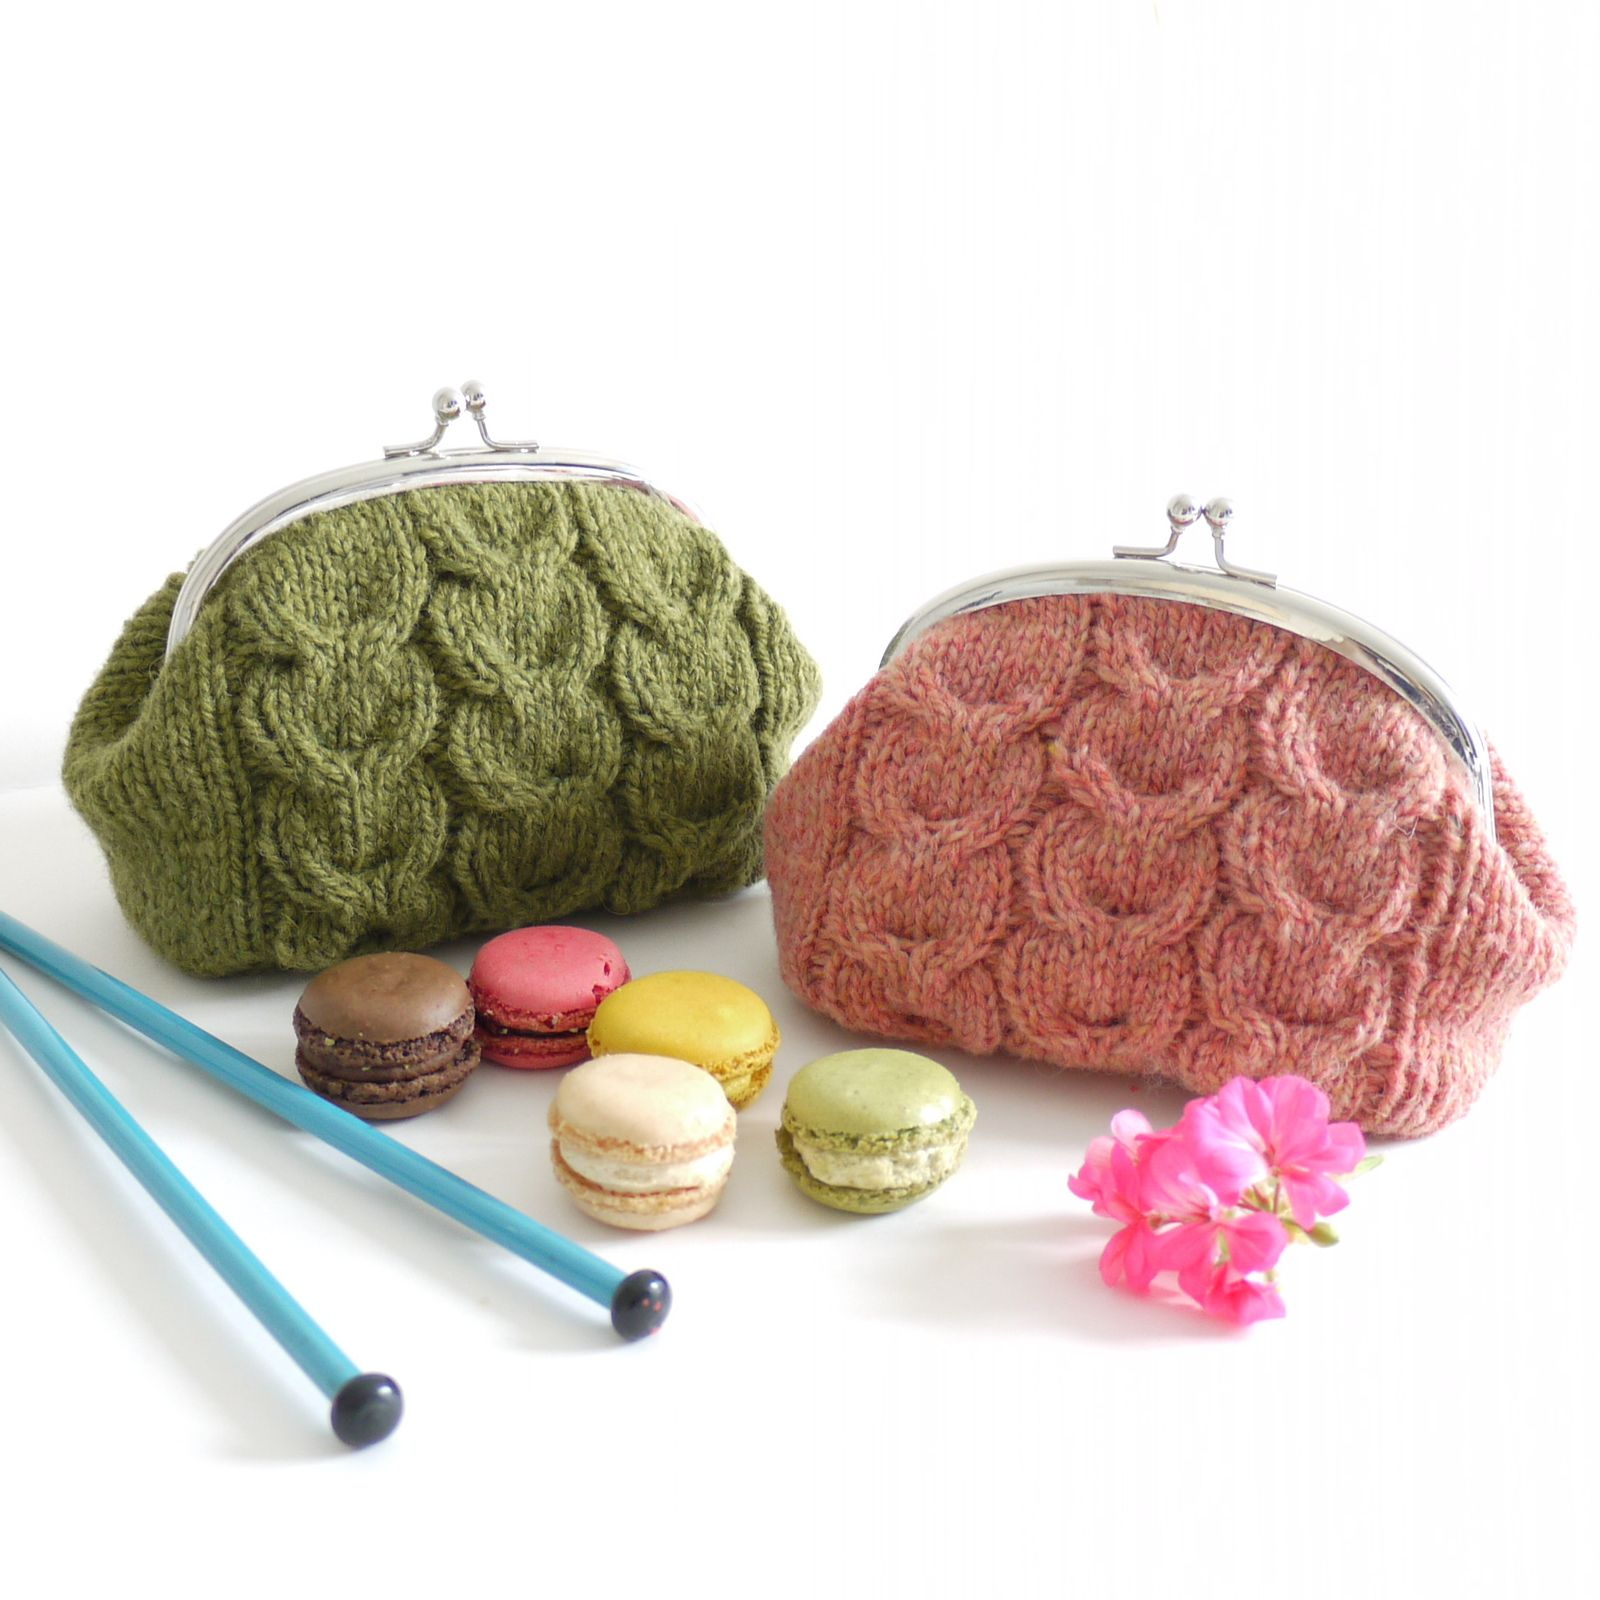 Knitted Purse Patterns New Design Inspiration